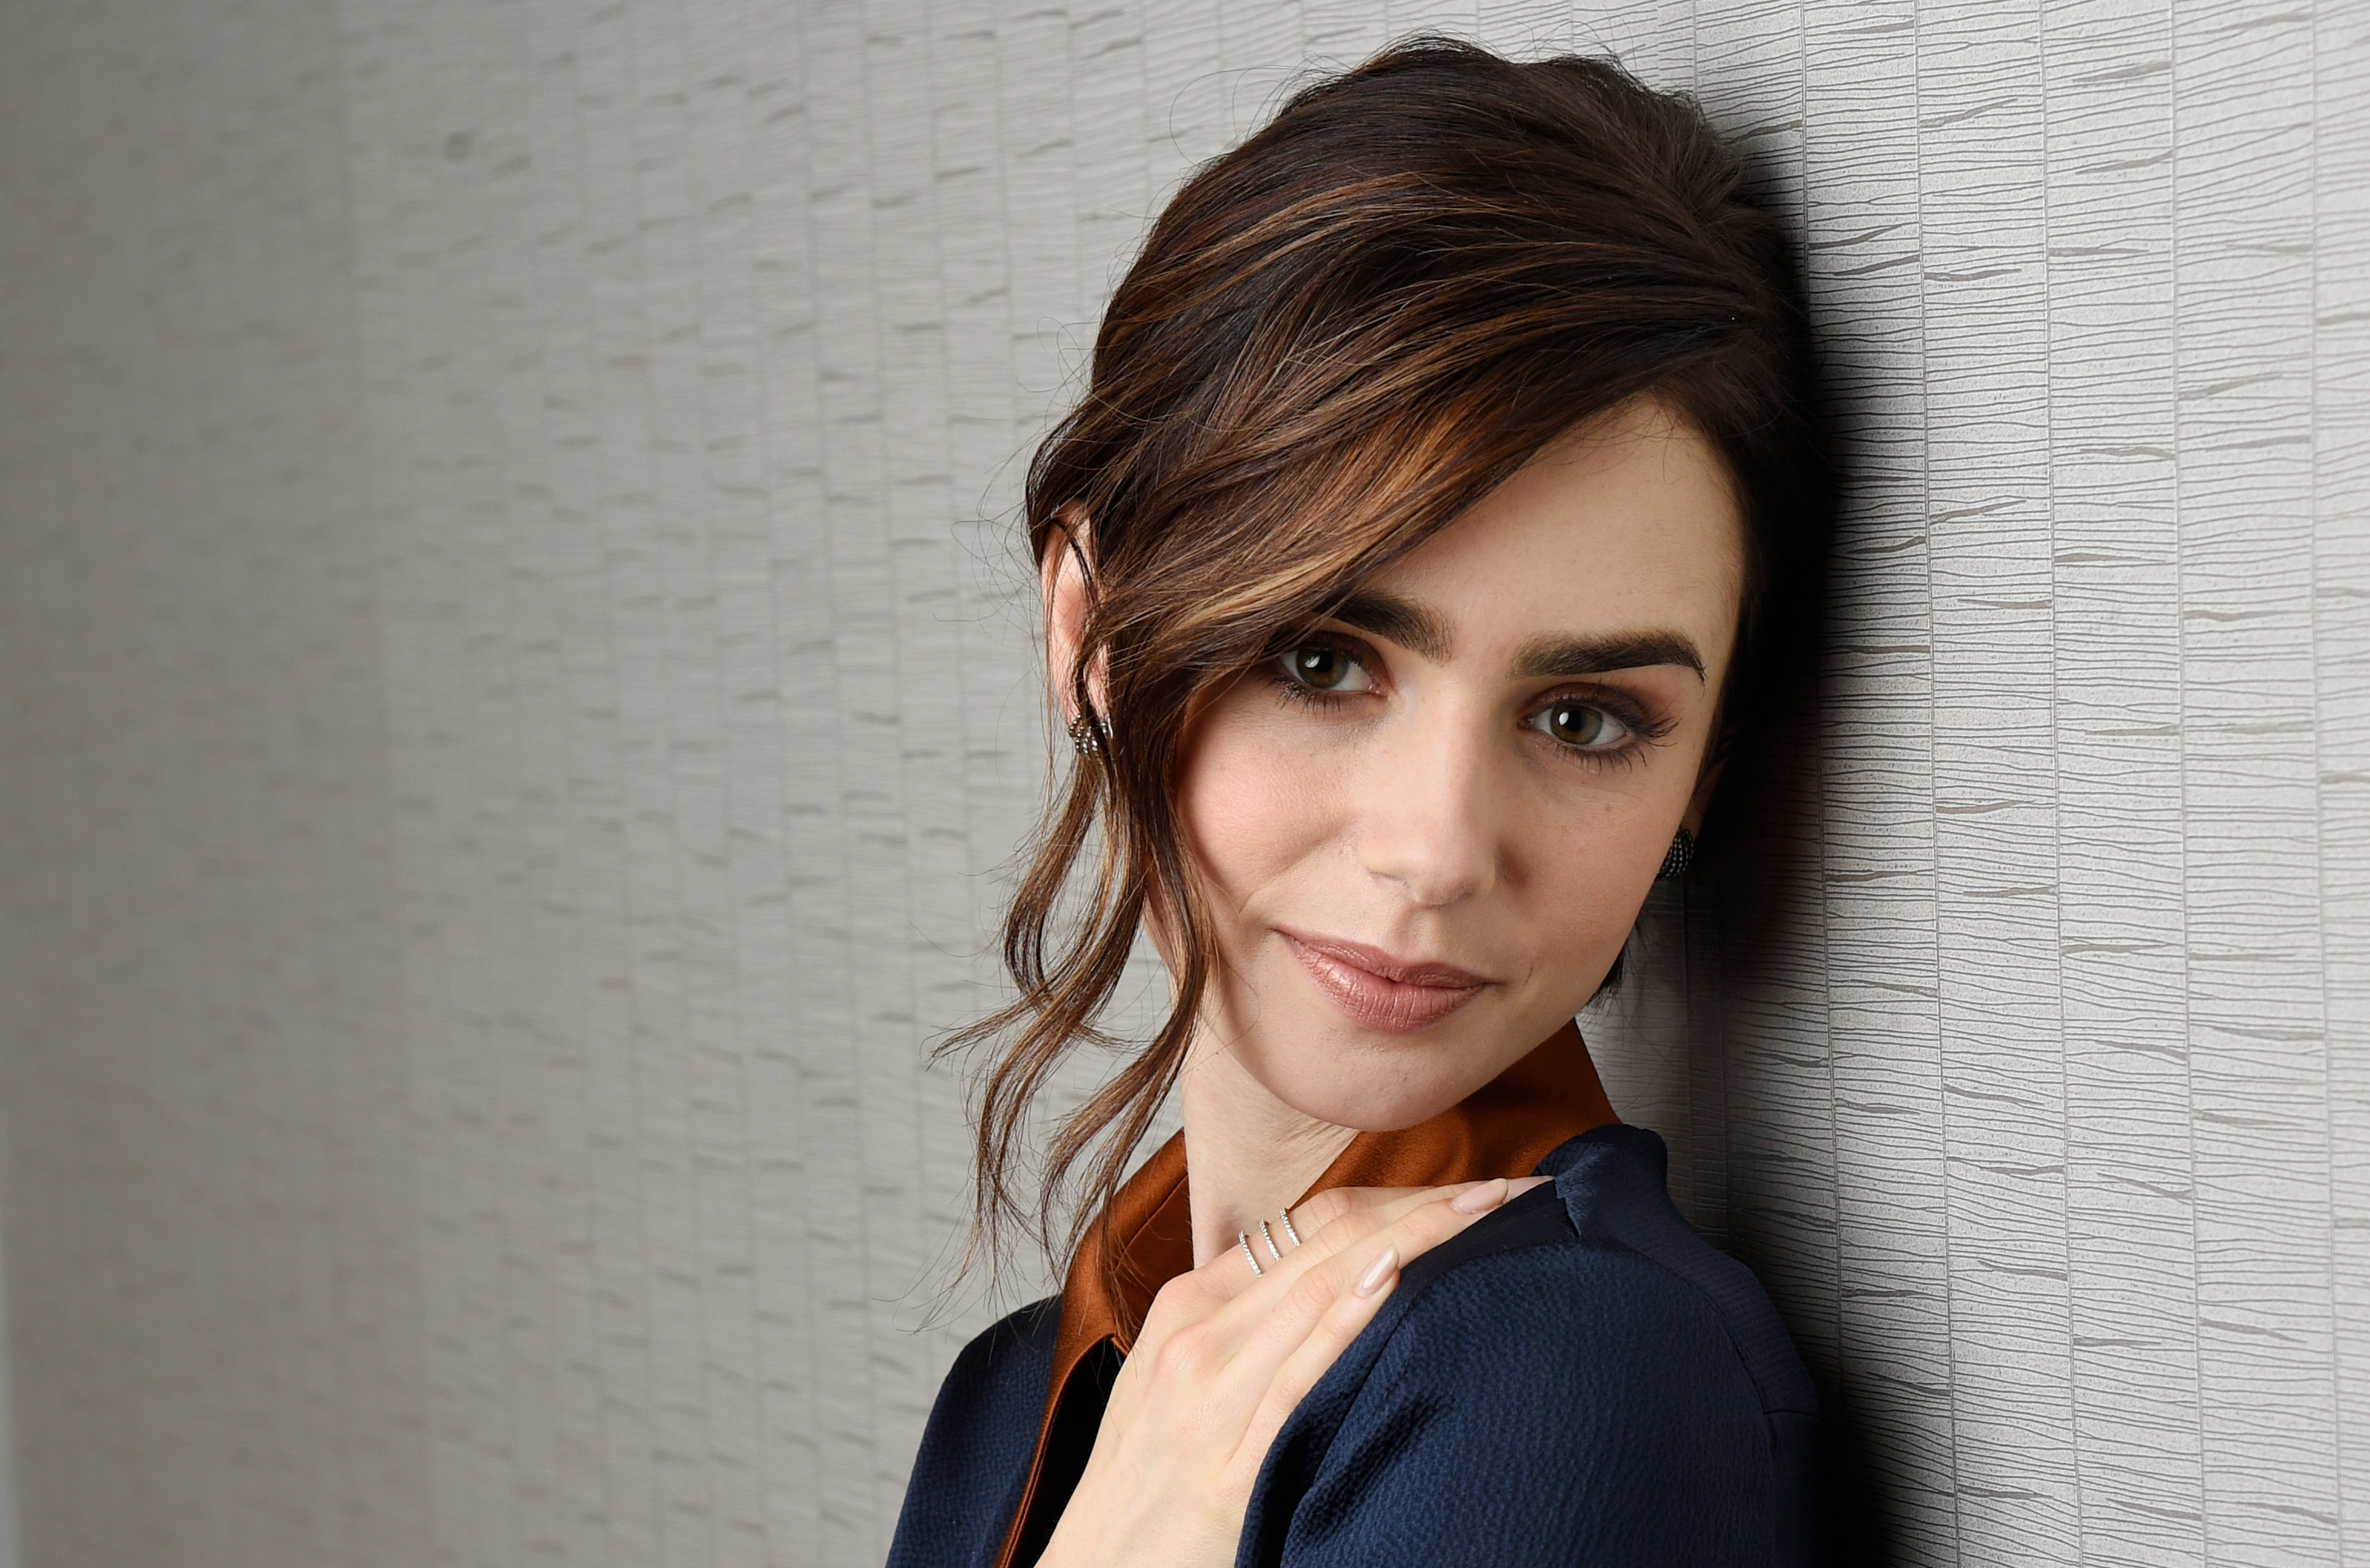 lily collins cute 2017 4k, hd celebrities, 4k wallpapers, images